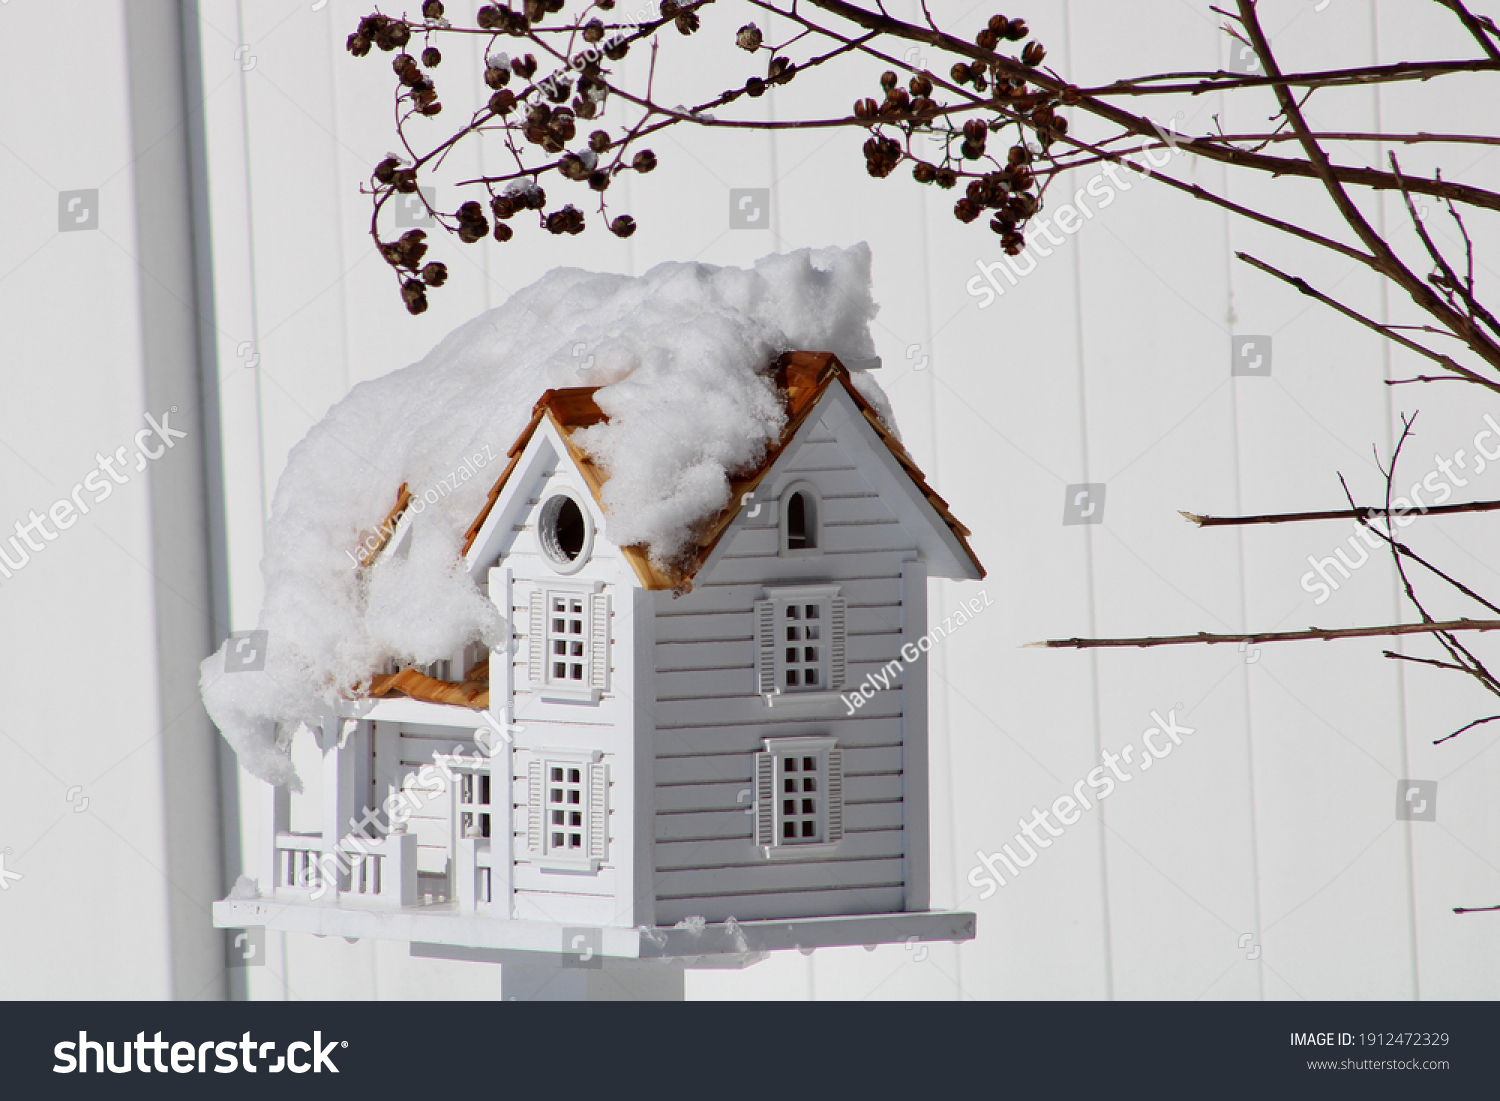 A detailed, white colonial birdhouse with a cedar shingle roof covered in snow and hiding under a bush filled with berries for cover.  The entrance hole just above the detailed porch is for songbirds.